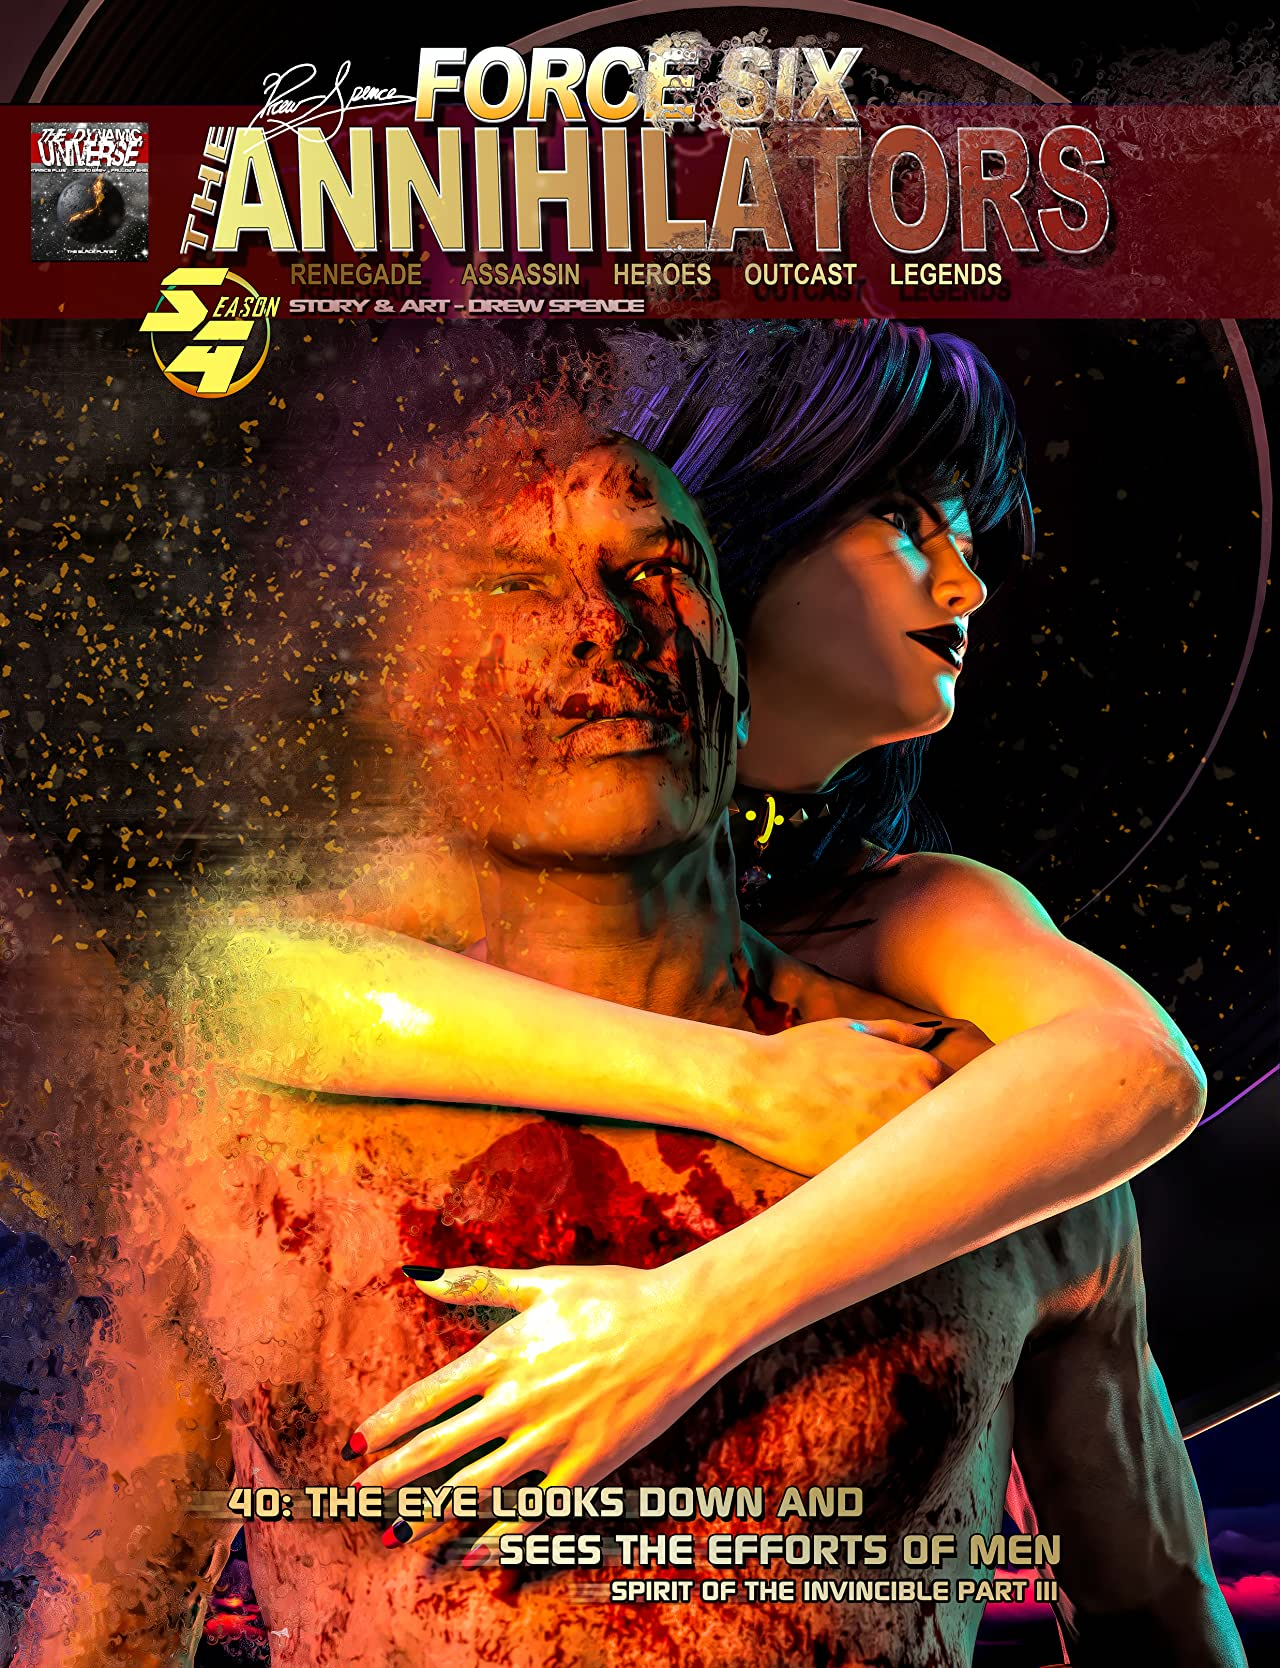 Force Six The Annihilators cover episode 40